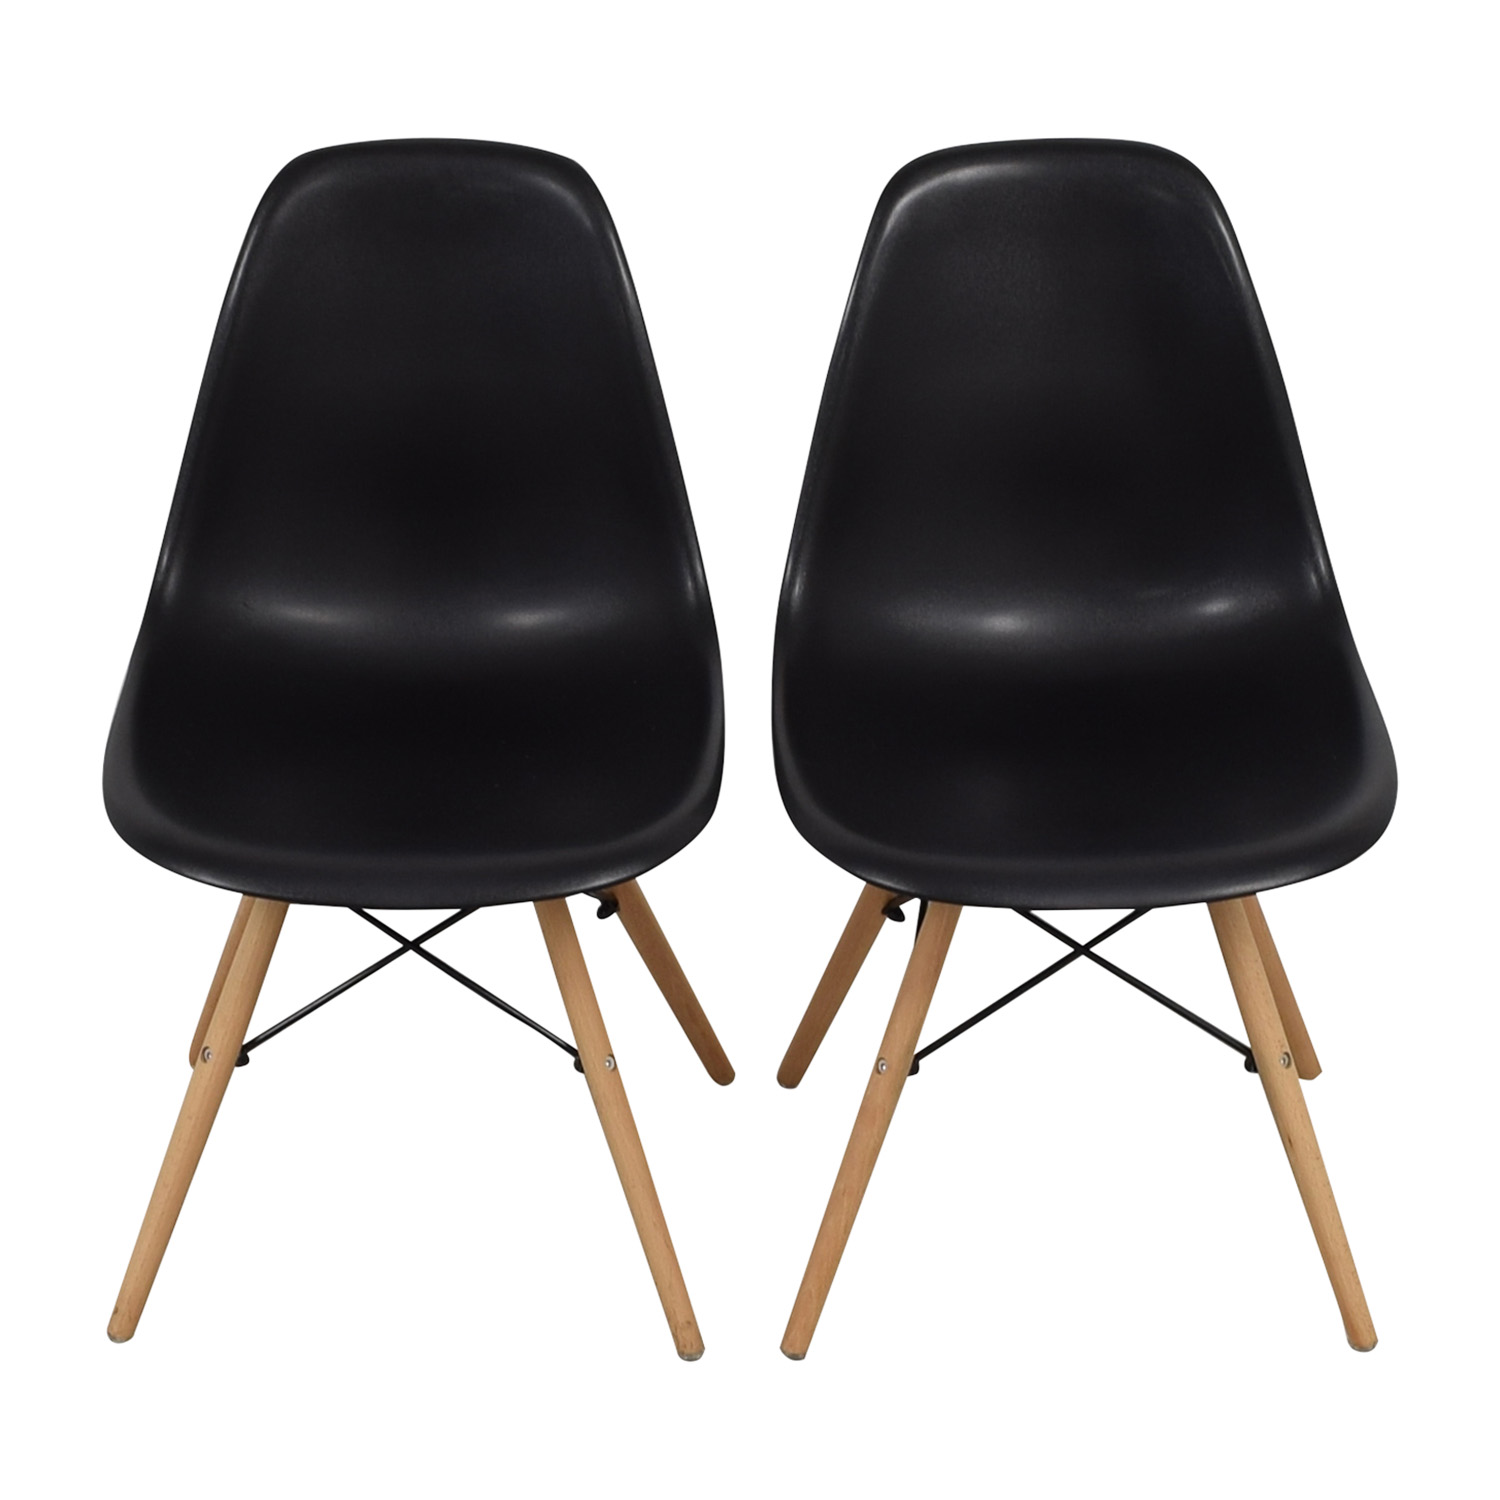 CB2 CB2 Black and Beech Wood Chairs price